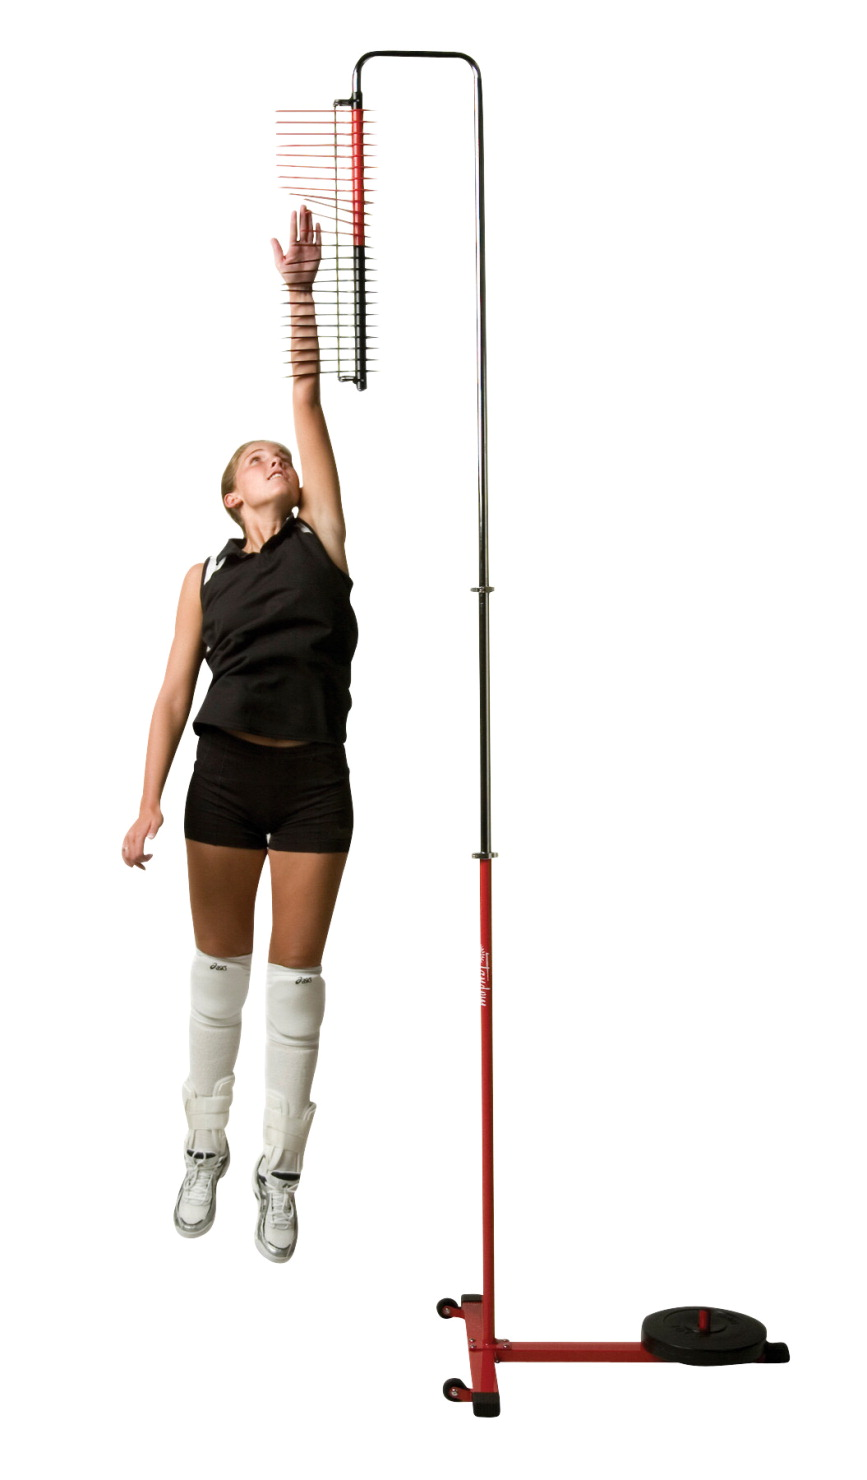 Physical Test Instruments : Vertical challenger jump tester school specialty marketplace